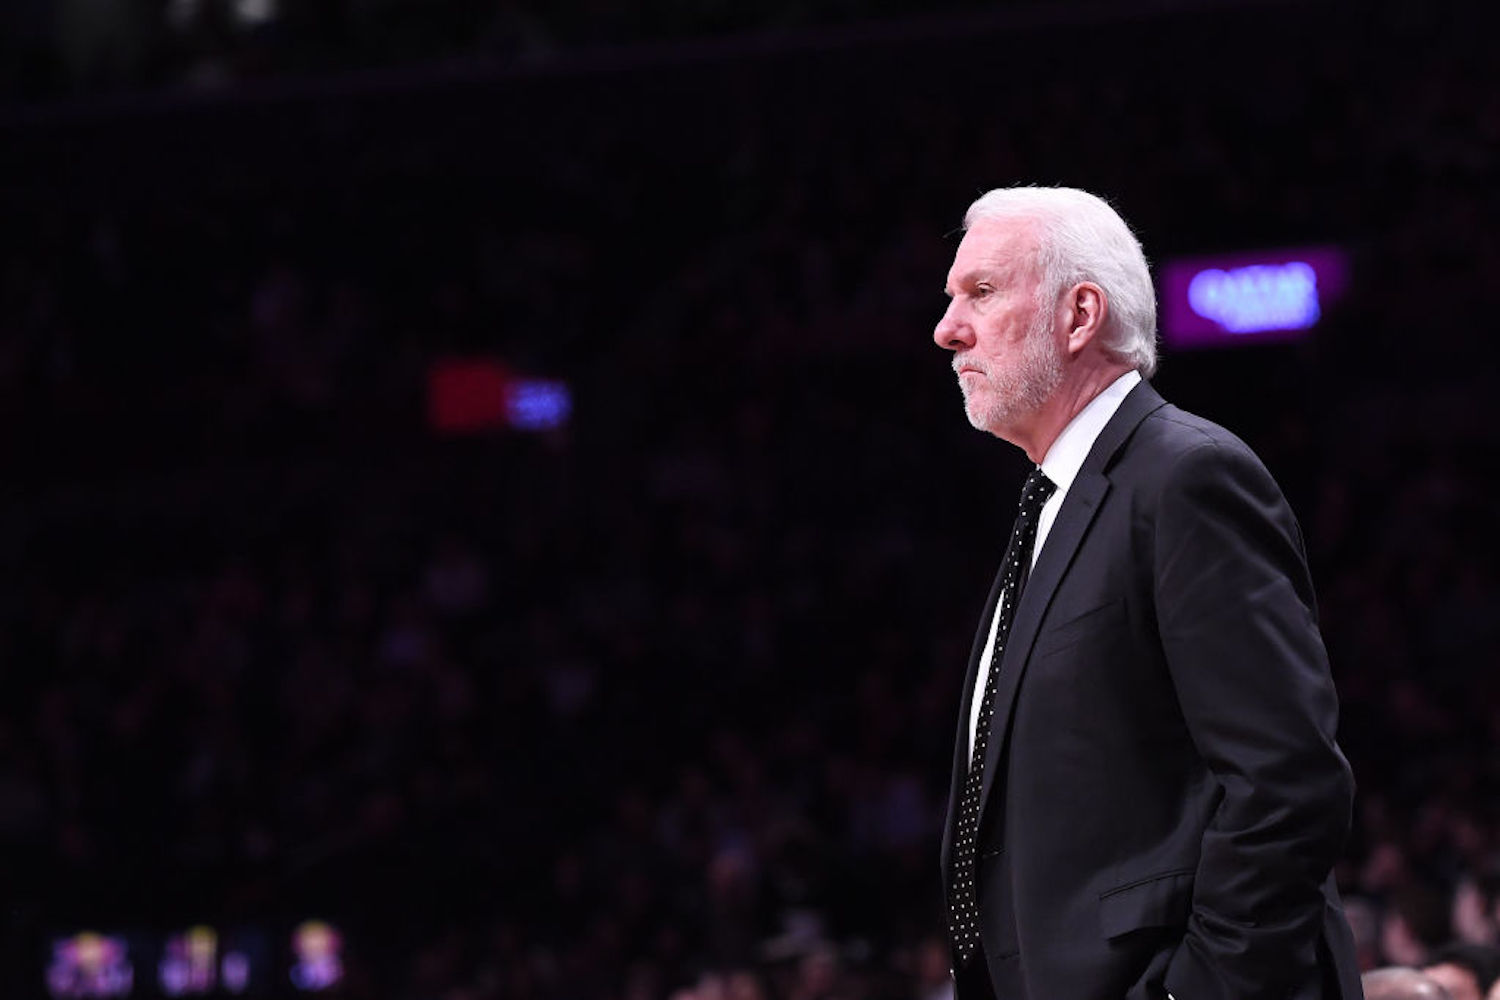 Gregg Popovich has been the head coach of the San Antonio Spurs for 24 years, but he might finally have a new home in 2021.